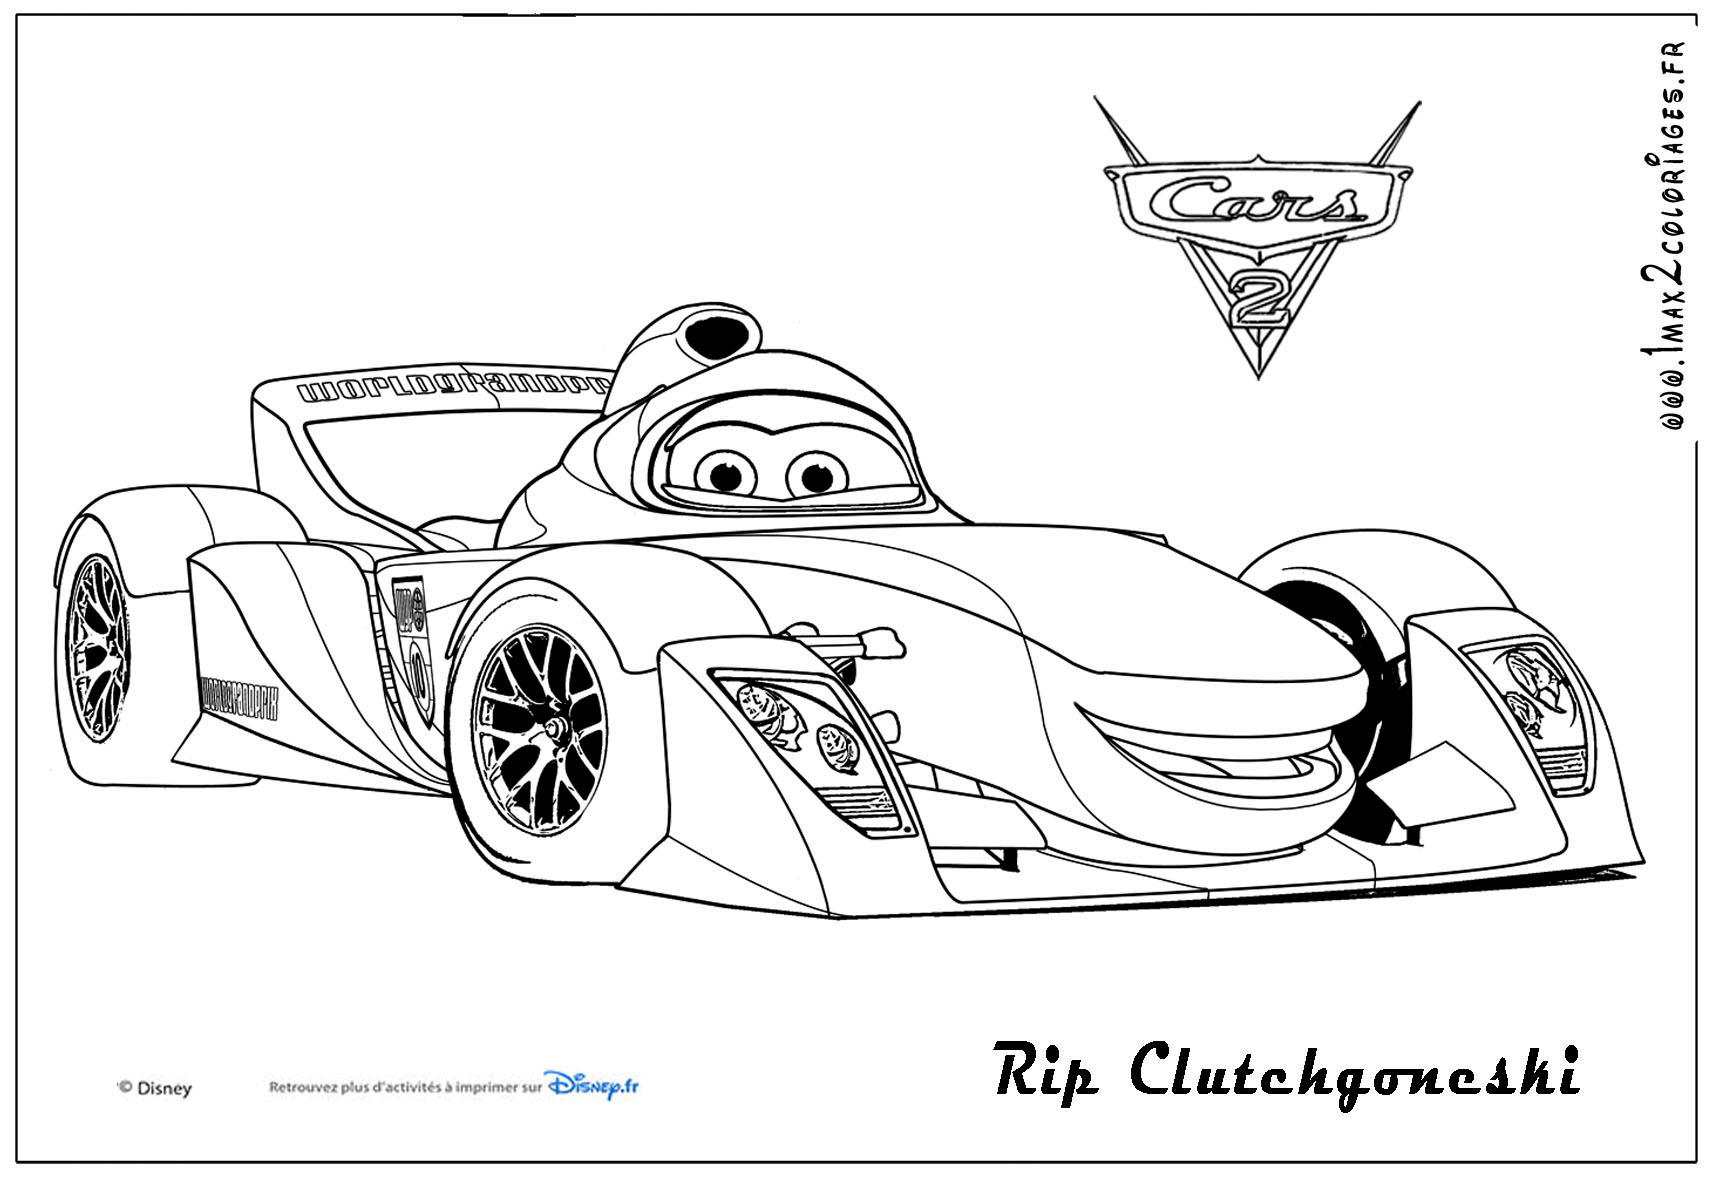 ars 2 rip clutchgoneski colouring pages